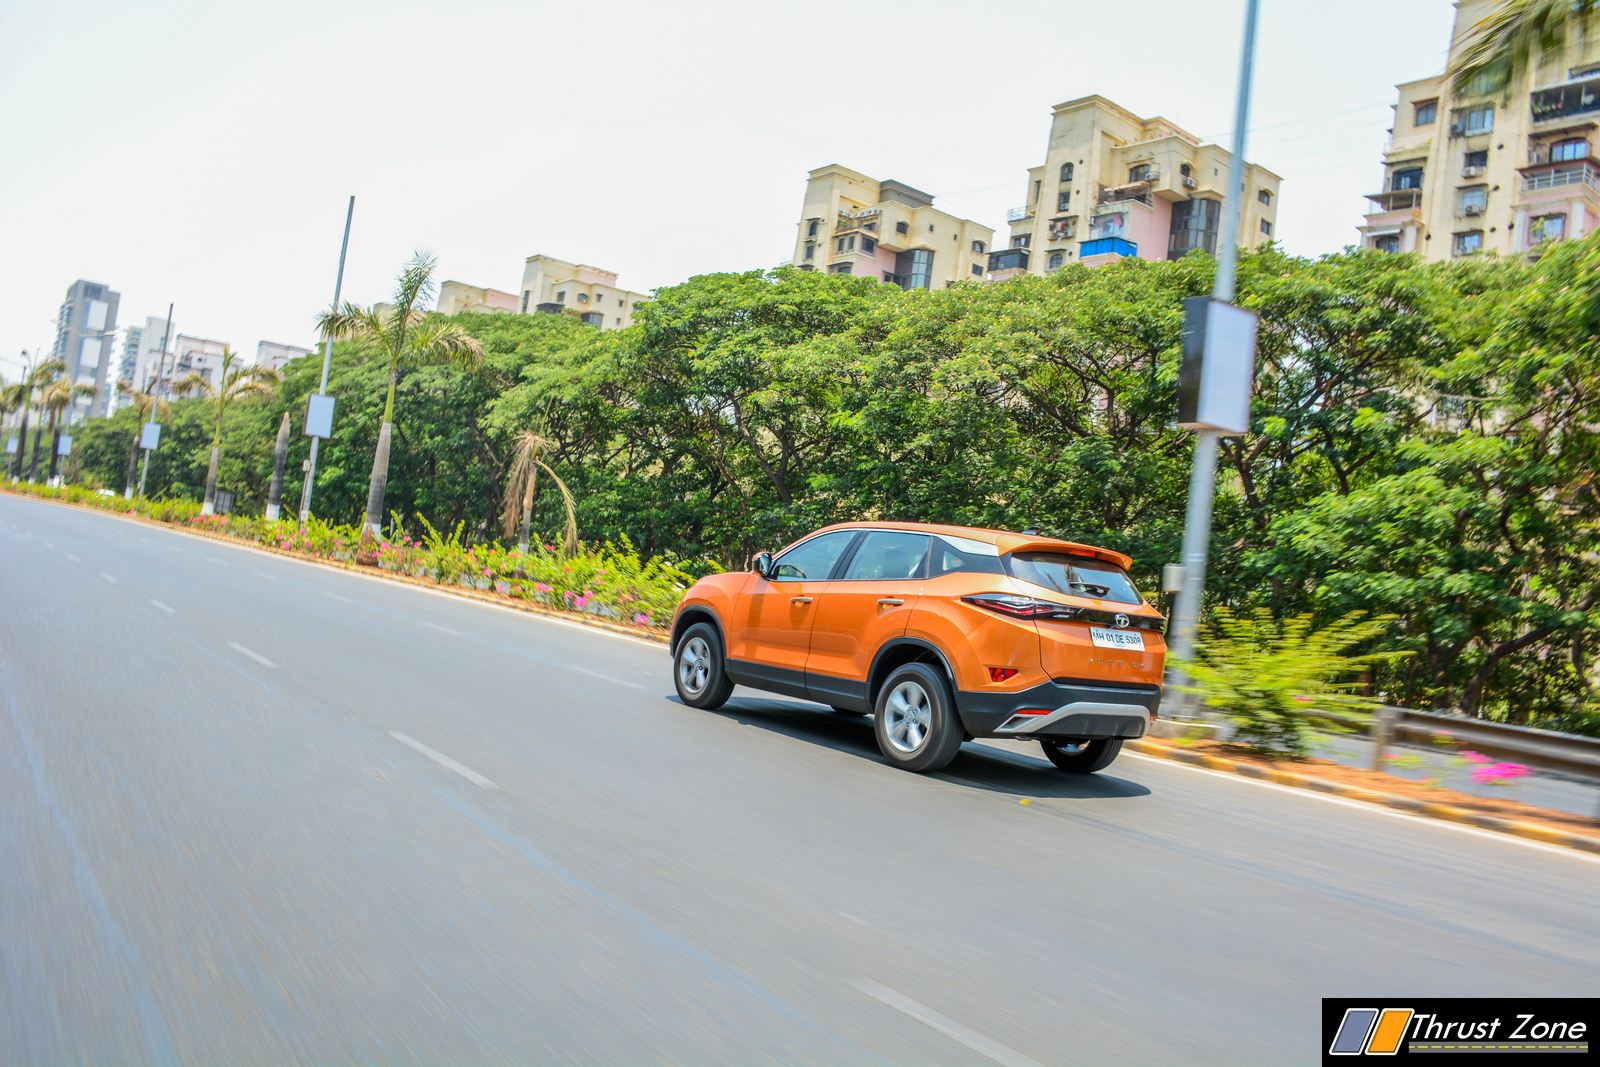 https://www.thrustzone.com/wp-content/uploads/2019/06/2019-Tata-harrier-diesel-manual-review-22.jpg